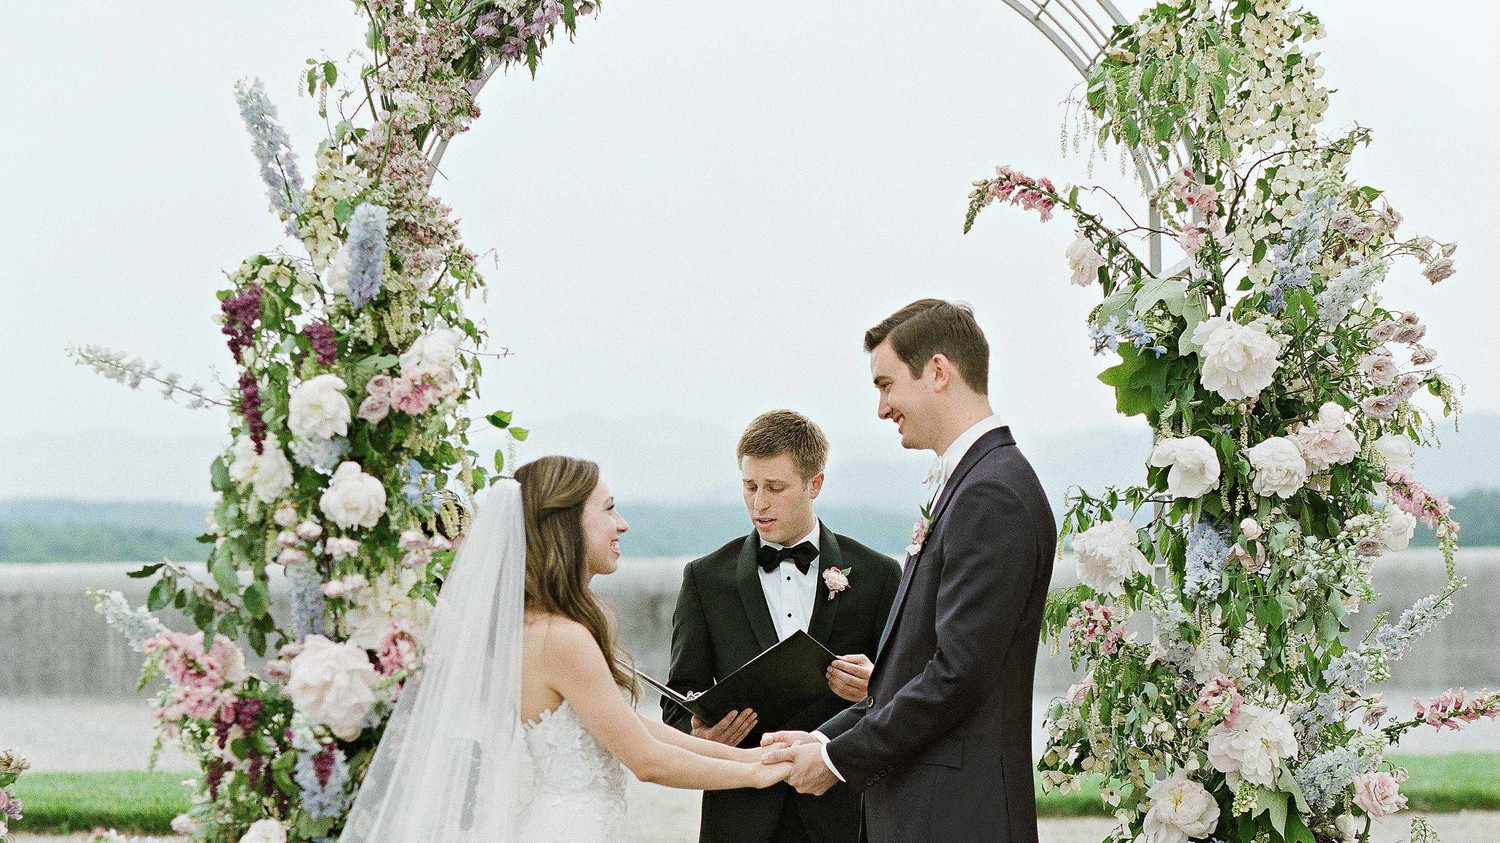 Wedding Song List For Ceremony: Wedding Vow Ideas Inspired By Songs